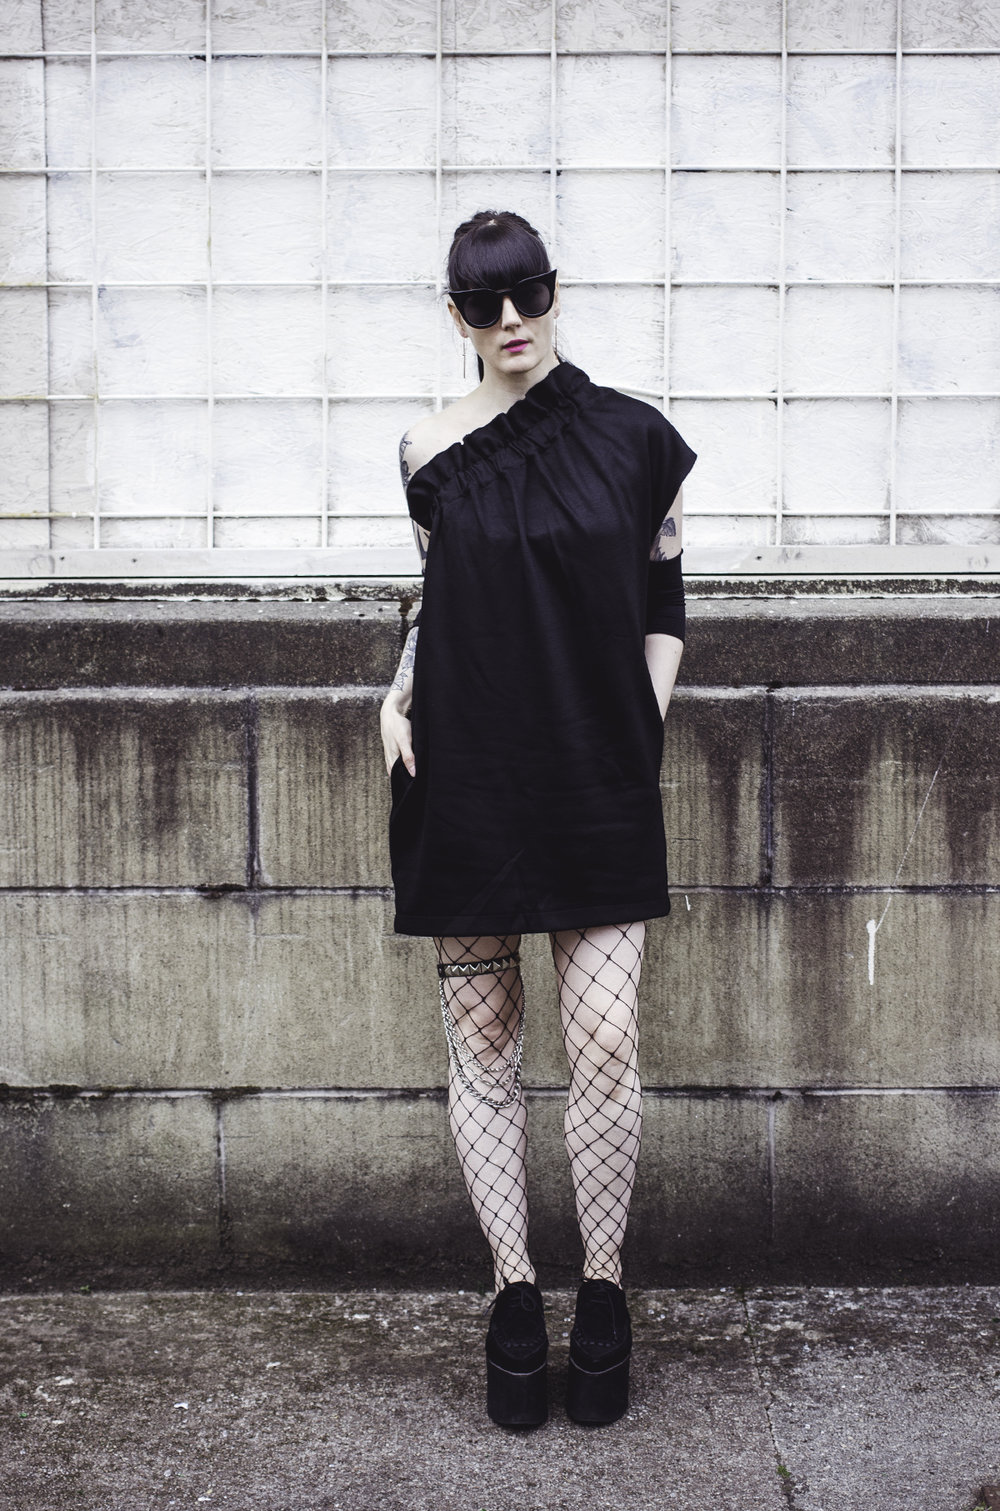 The Details -      COS dress // Underground England shoes // ASOS tights // Le Specs sunglasses // DIY Armbands // DIY Leg chain